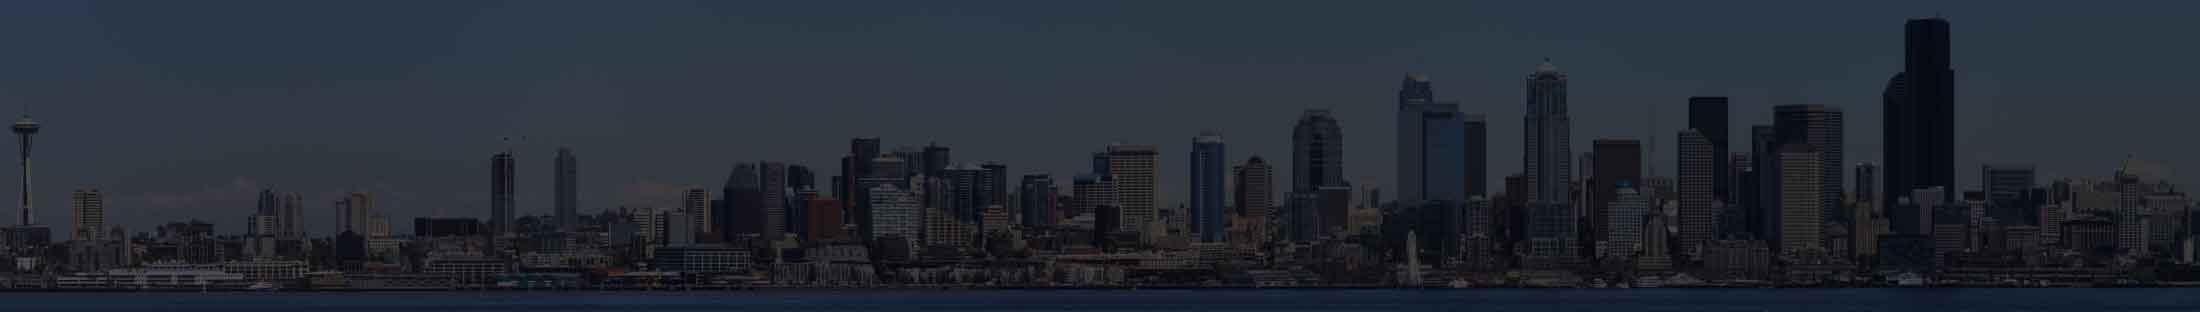 About Capital Financial header background, Seattle skyline